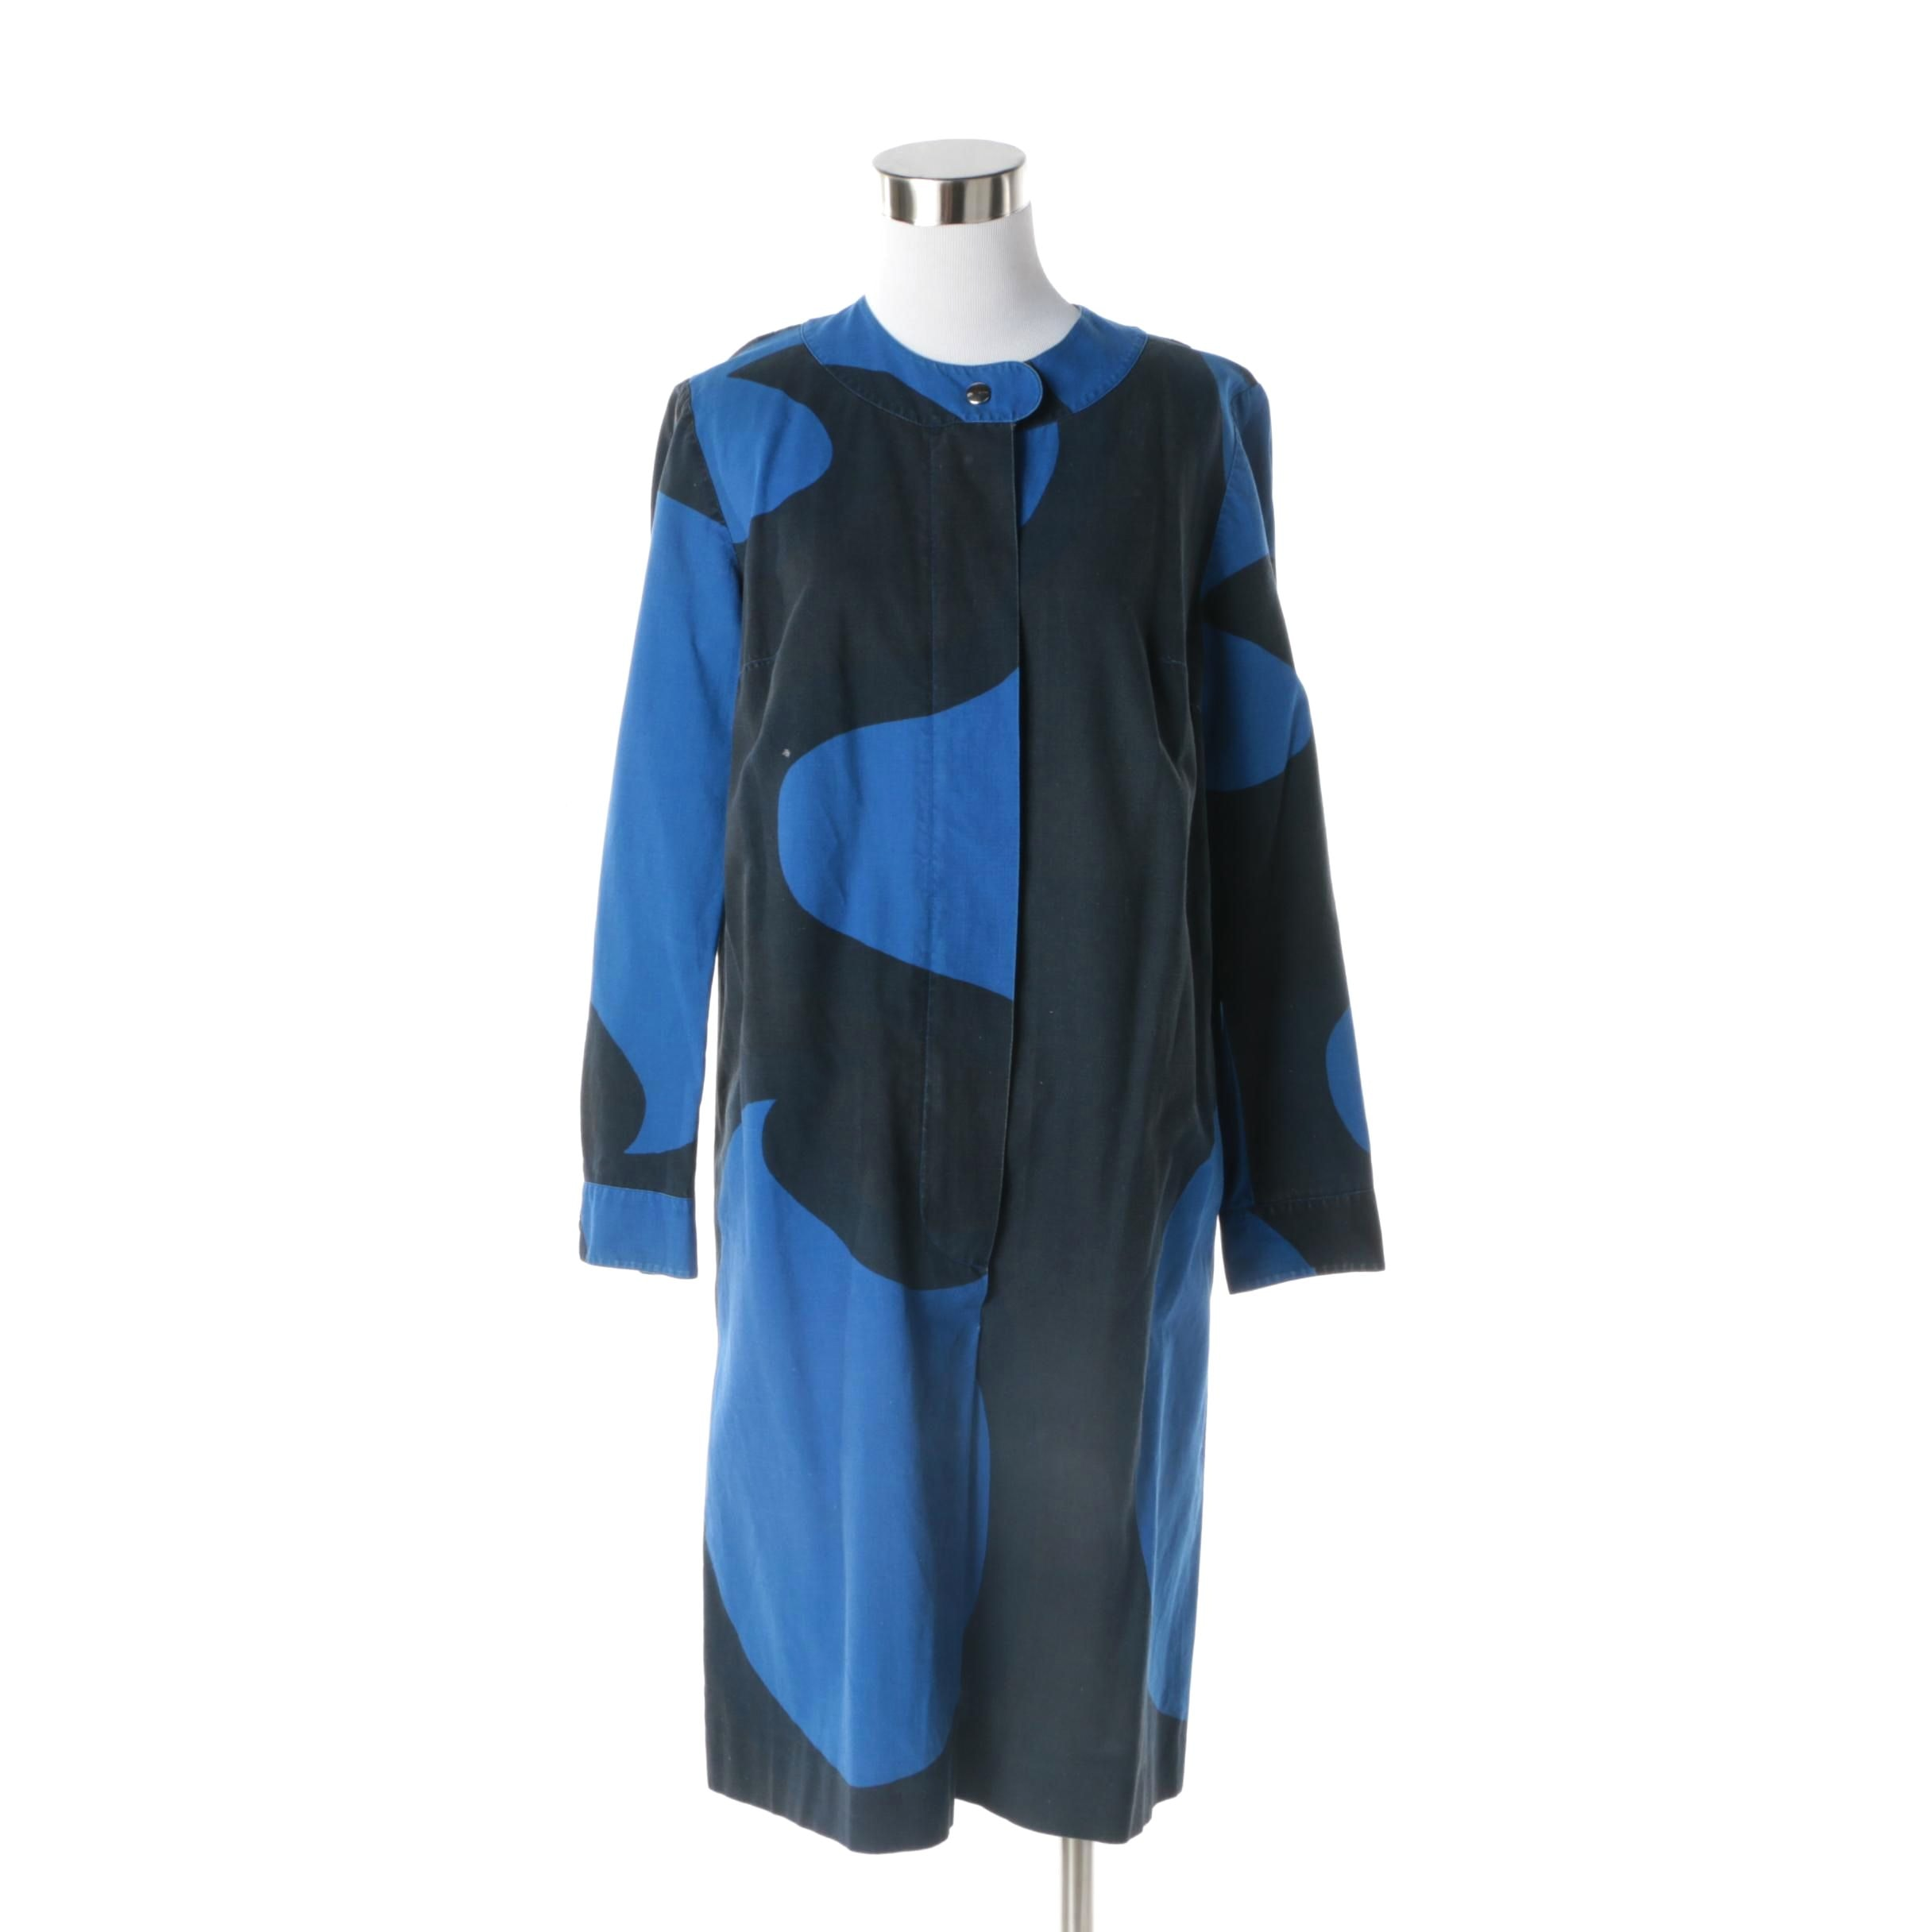 Women's 1967 Vintage Marimekko of Finland Black and Blue Cotton Dress